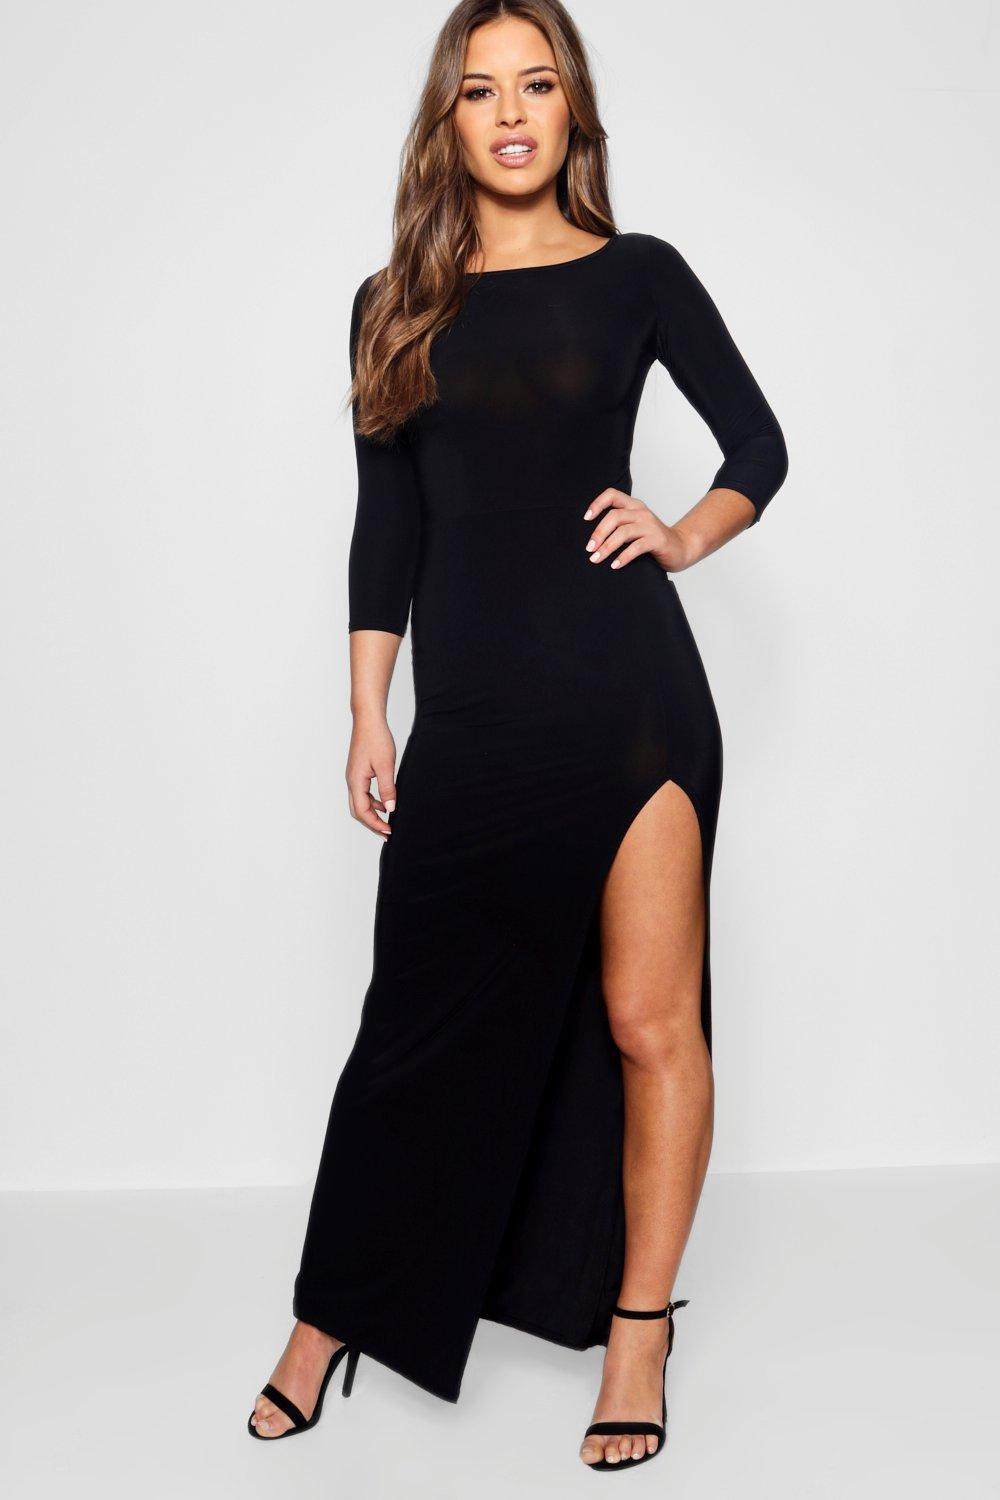 Long Black Dress With Slits Up Both Sides